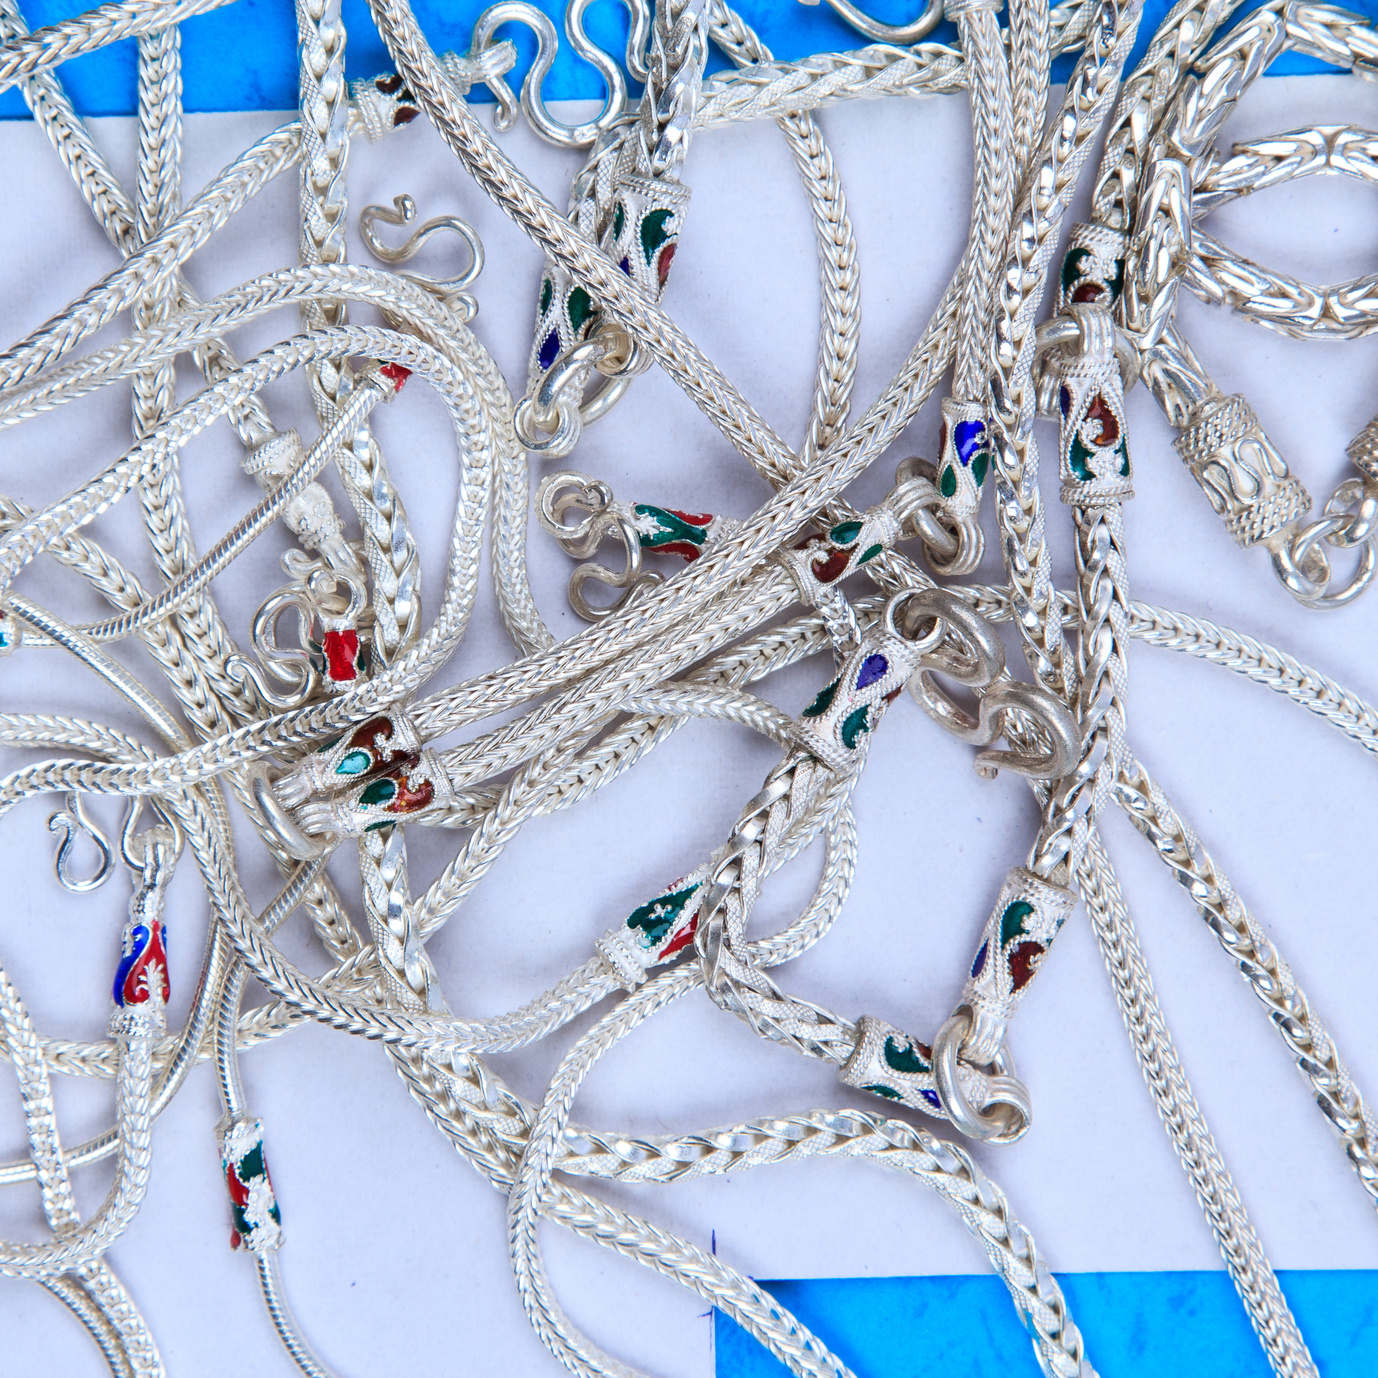 How we got a jewelry store website clicks from social media